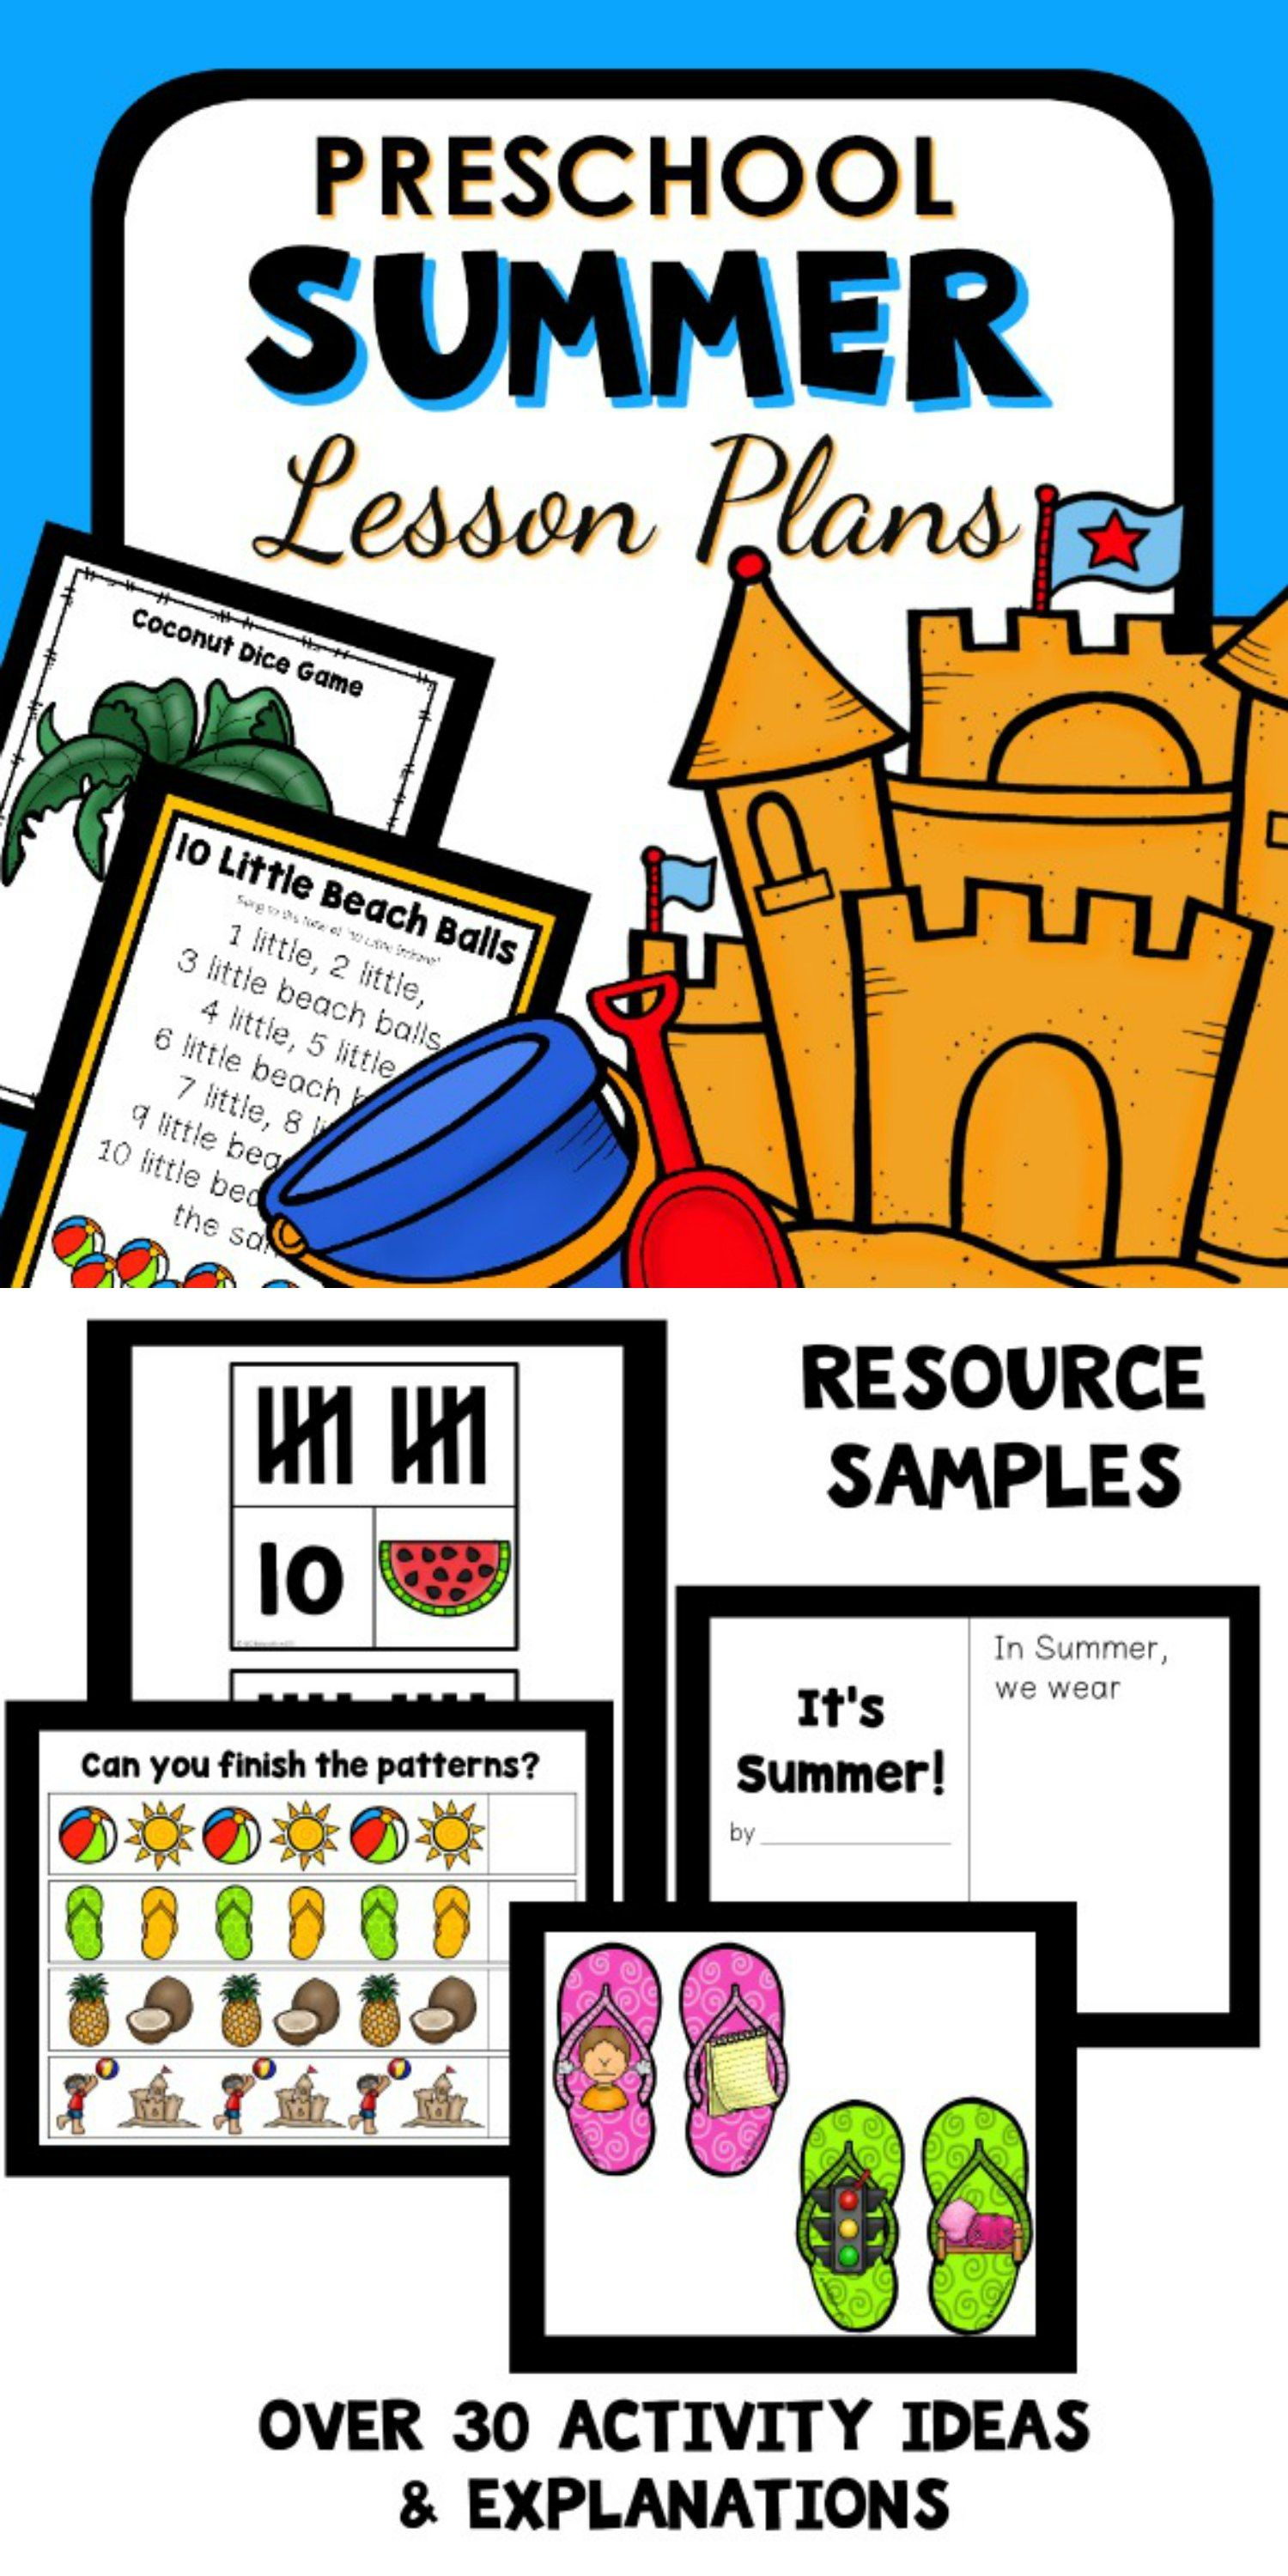 Summer Theme Preschool Classroom Lesson Plans